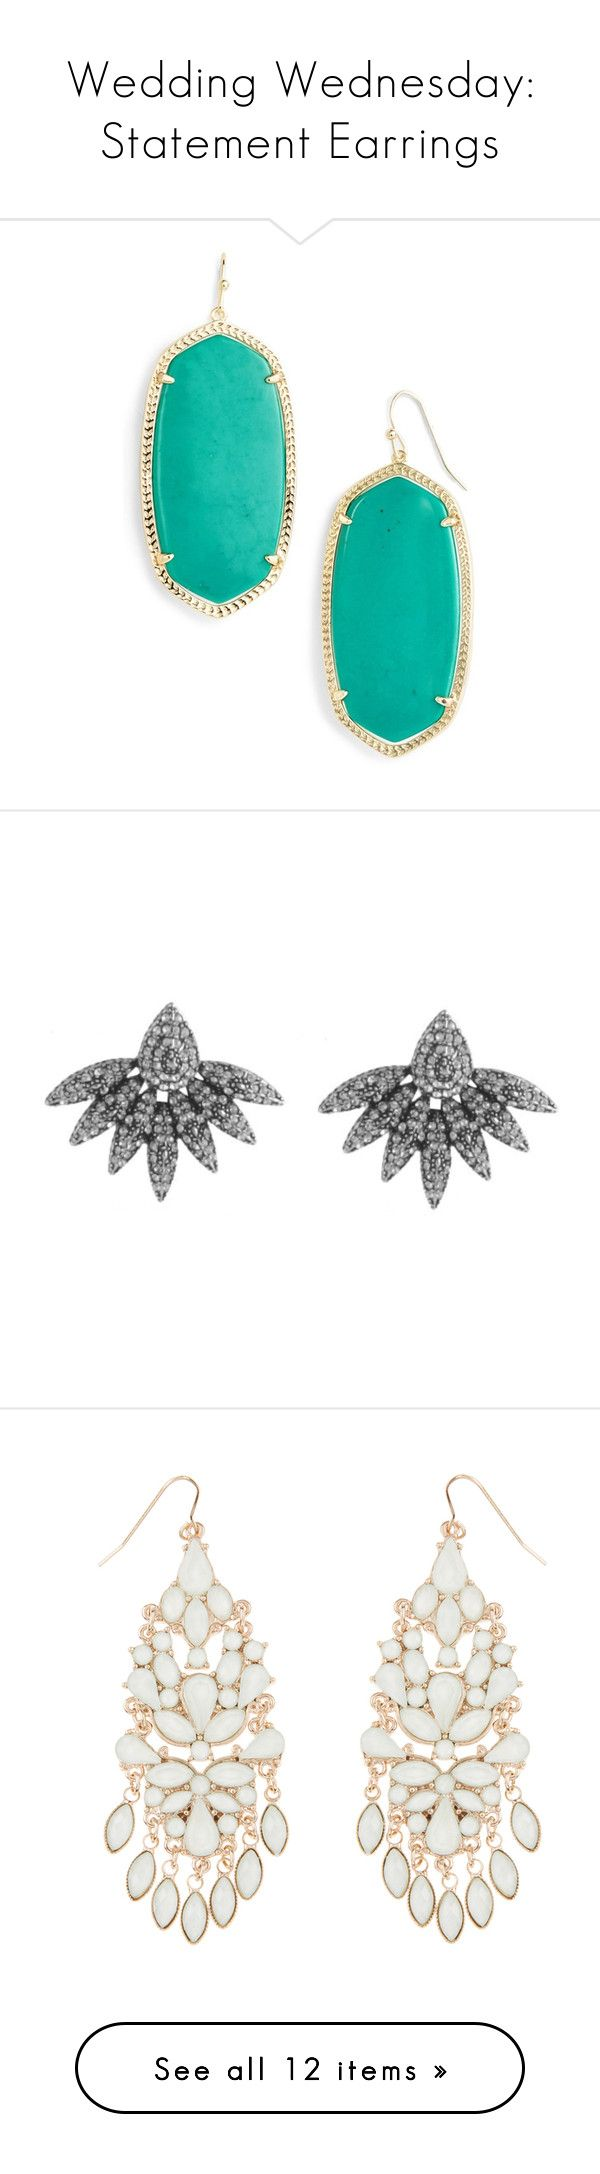 """Wedding Wednesday: Statement Earrings"" by polyvore-editorial ❤ liked on Polyvore featuring StatementEarrings, weddingwednesday, jewelry, earrings, orecchini, kendra scott jewelry, earrings jewelry, 14 karat gold earrings, statement earrings en oval earrings"